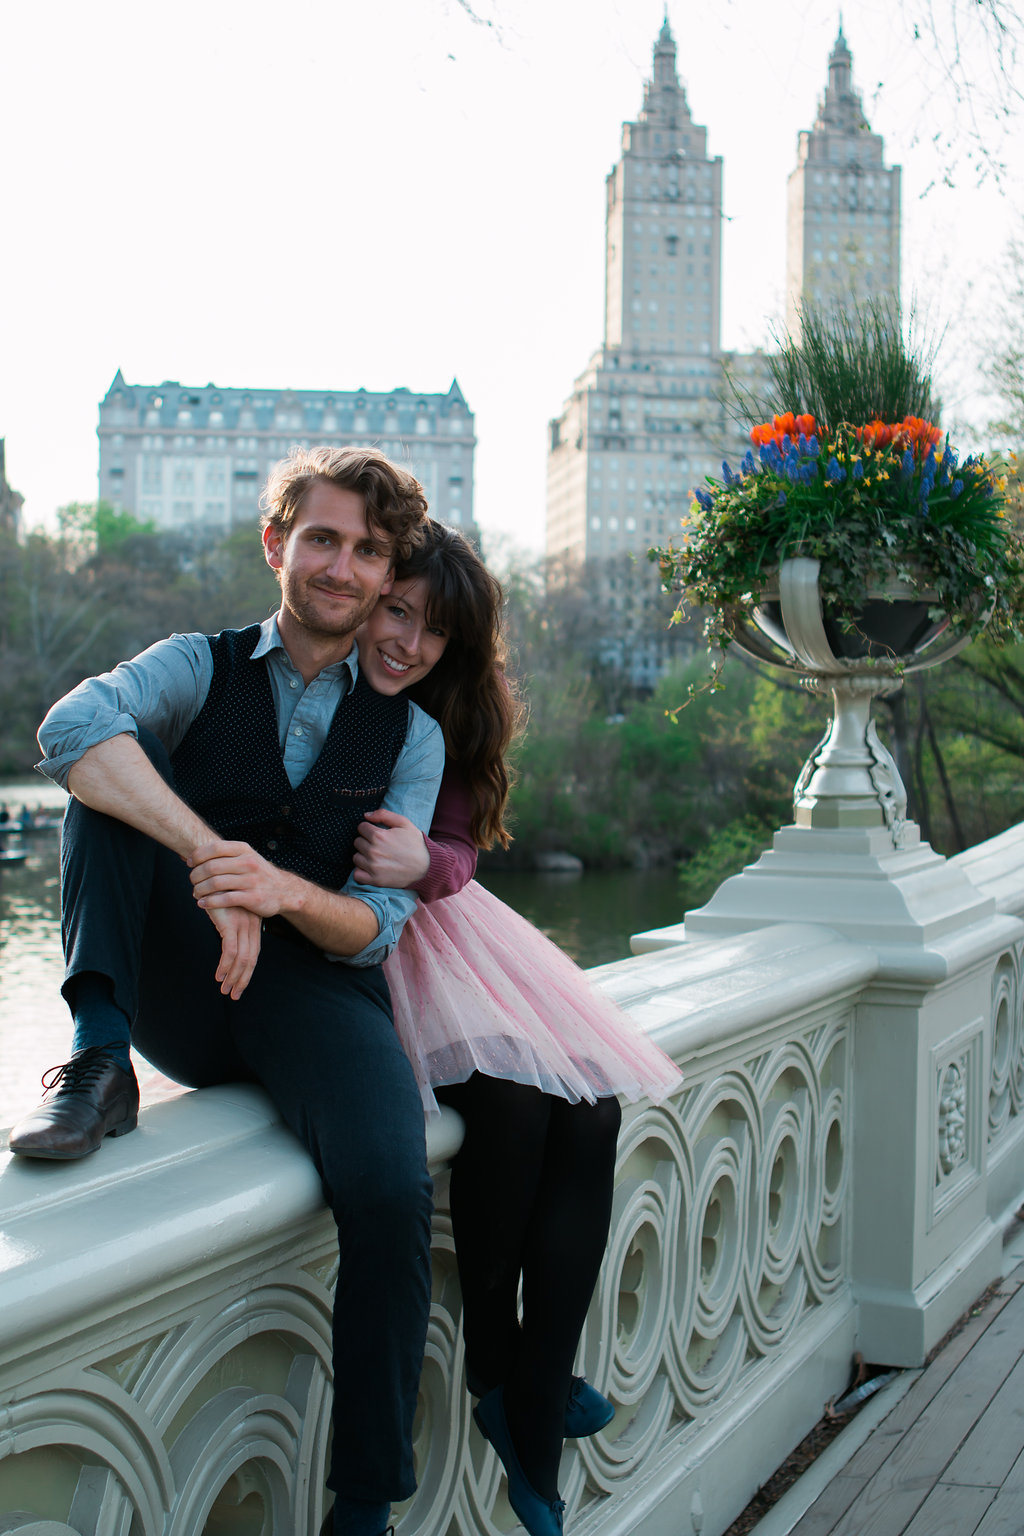 kate alison photography Myke-Teri-Central-Park-48 nyc photographer-1